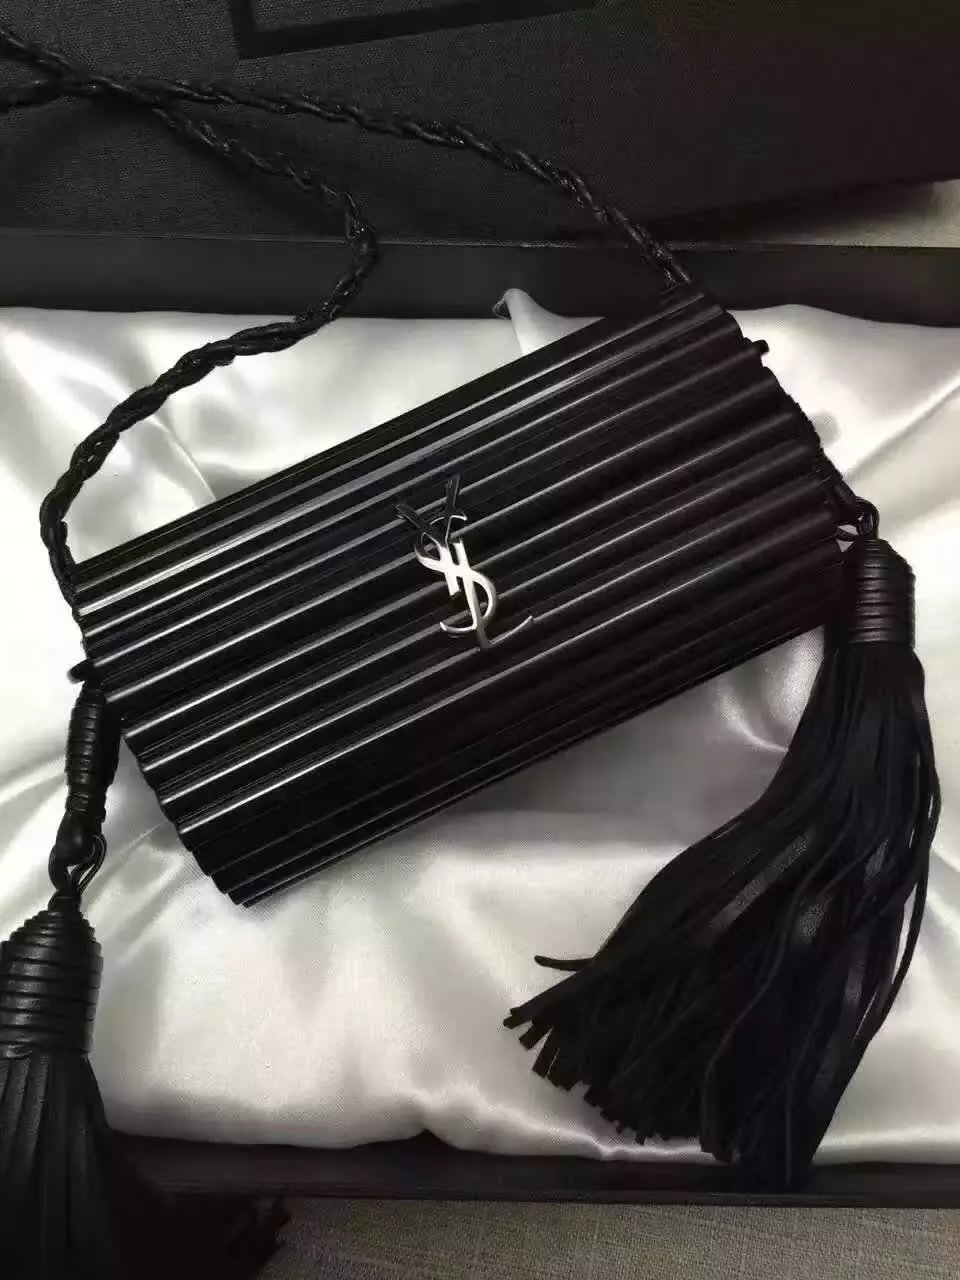 Limited Edition!2016 Cheap YSL Out Sale with Free Shipping-Saint Laurent Opium Minaudiere Bag in Black Plexiglas and Black Leather